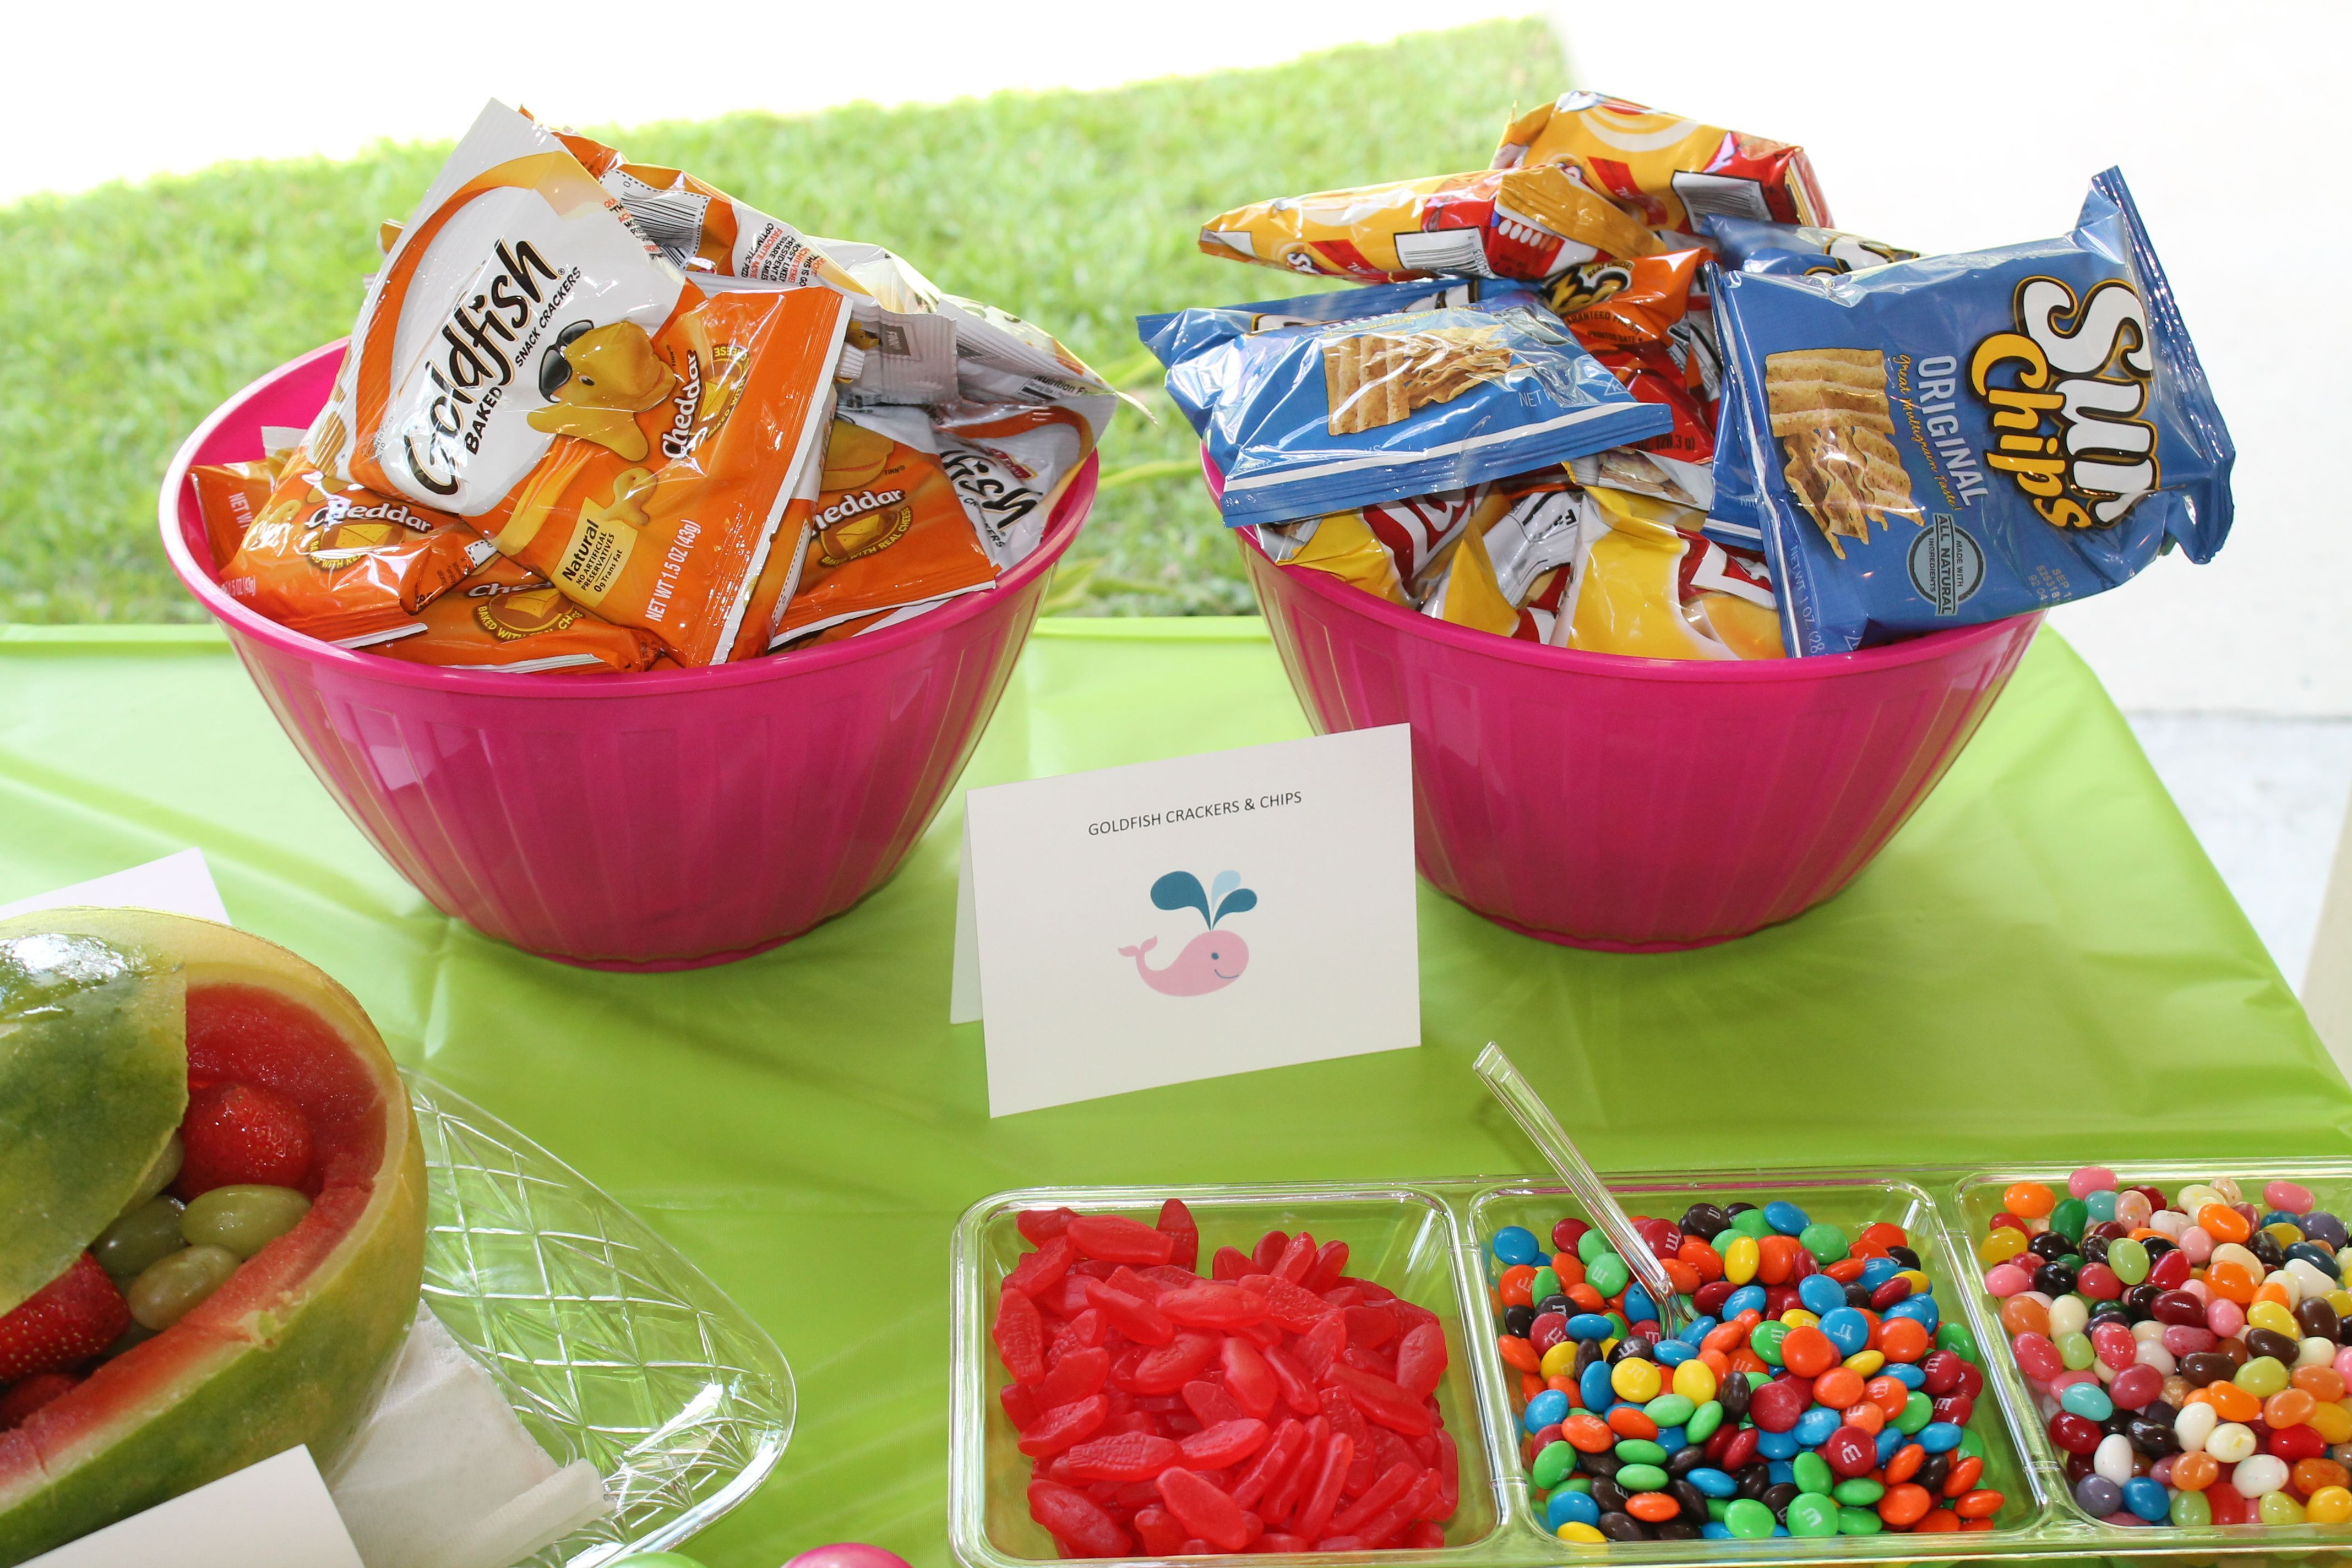 Food Ideas For Pool Party  Goldfish crackers fit the theme but the chips were more